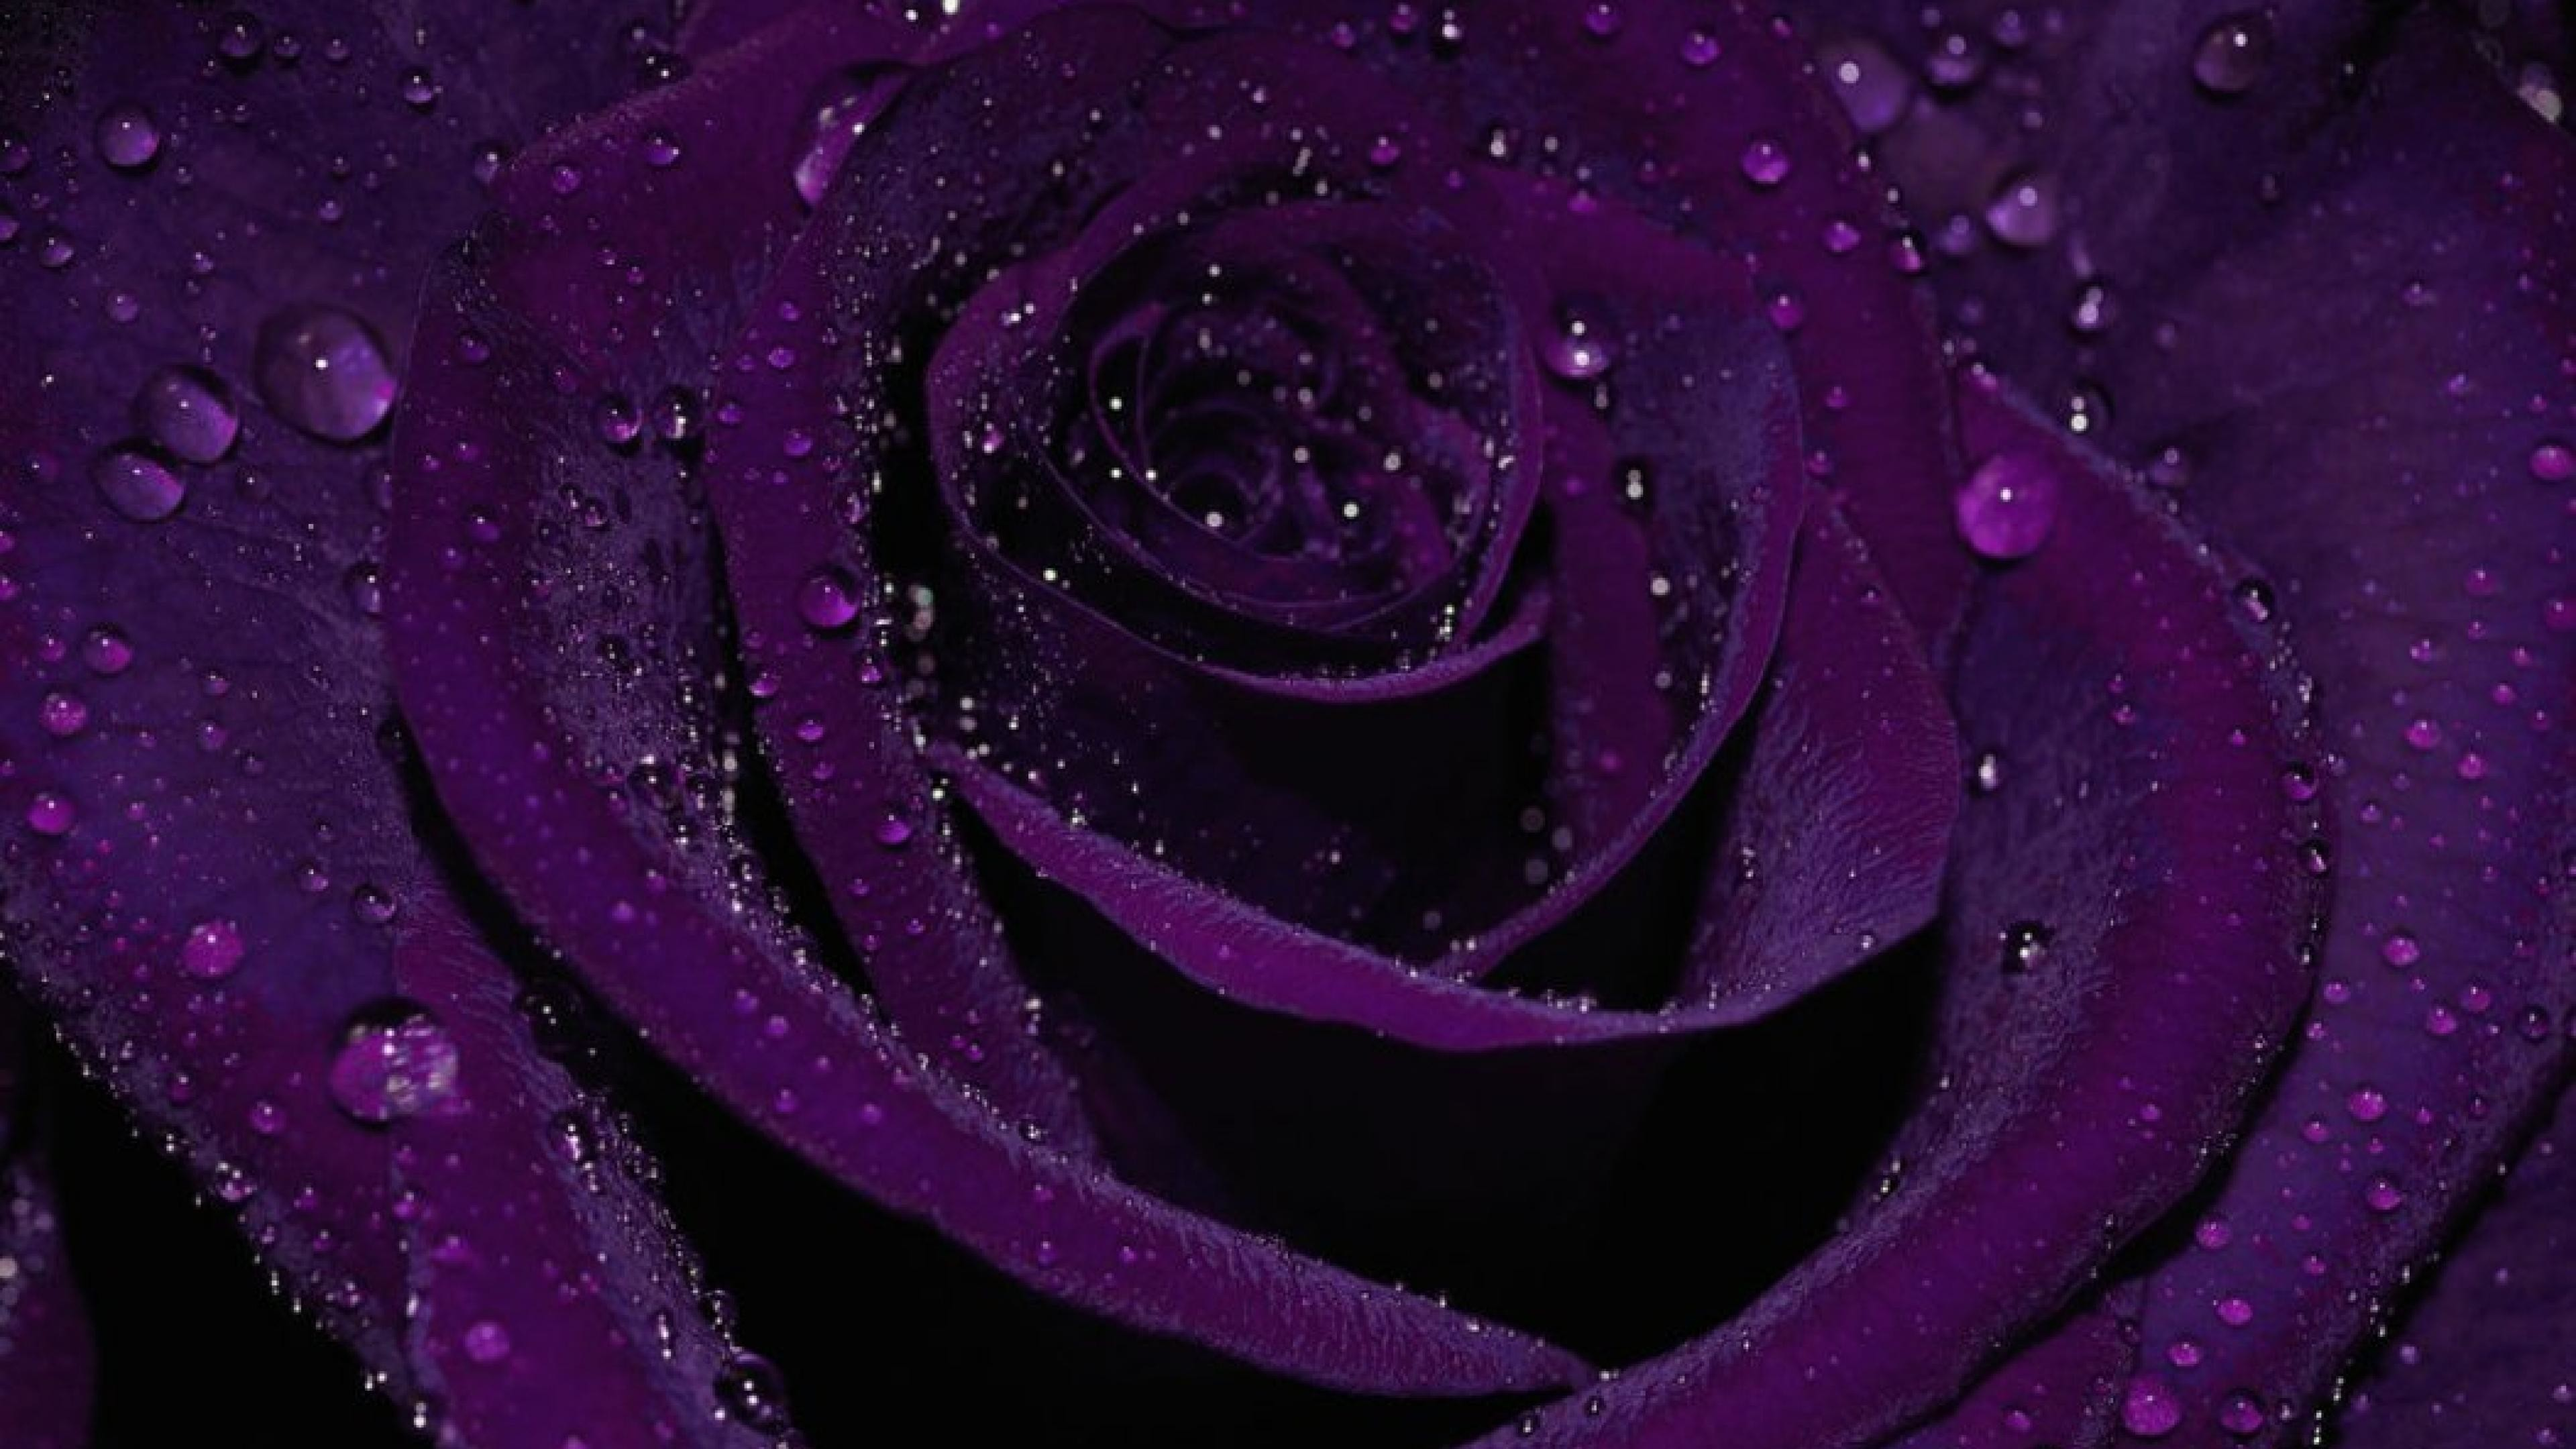 3840x2160 purple rose wallpaper .